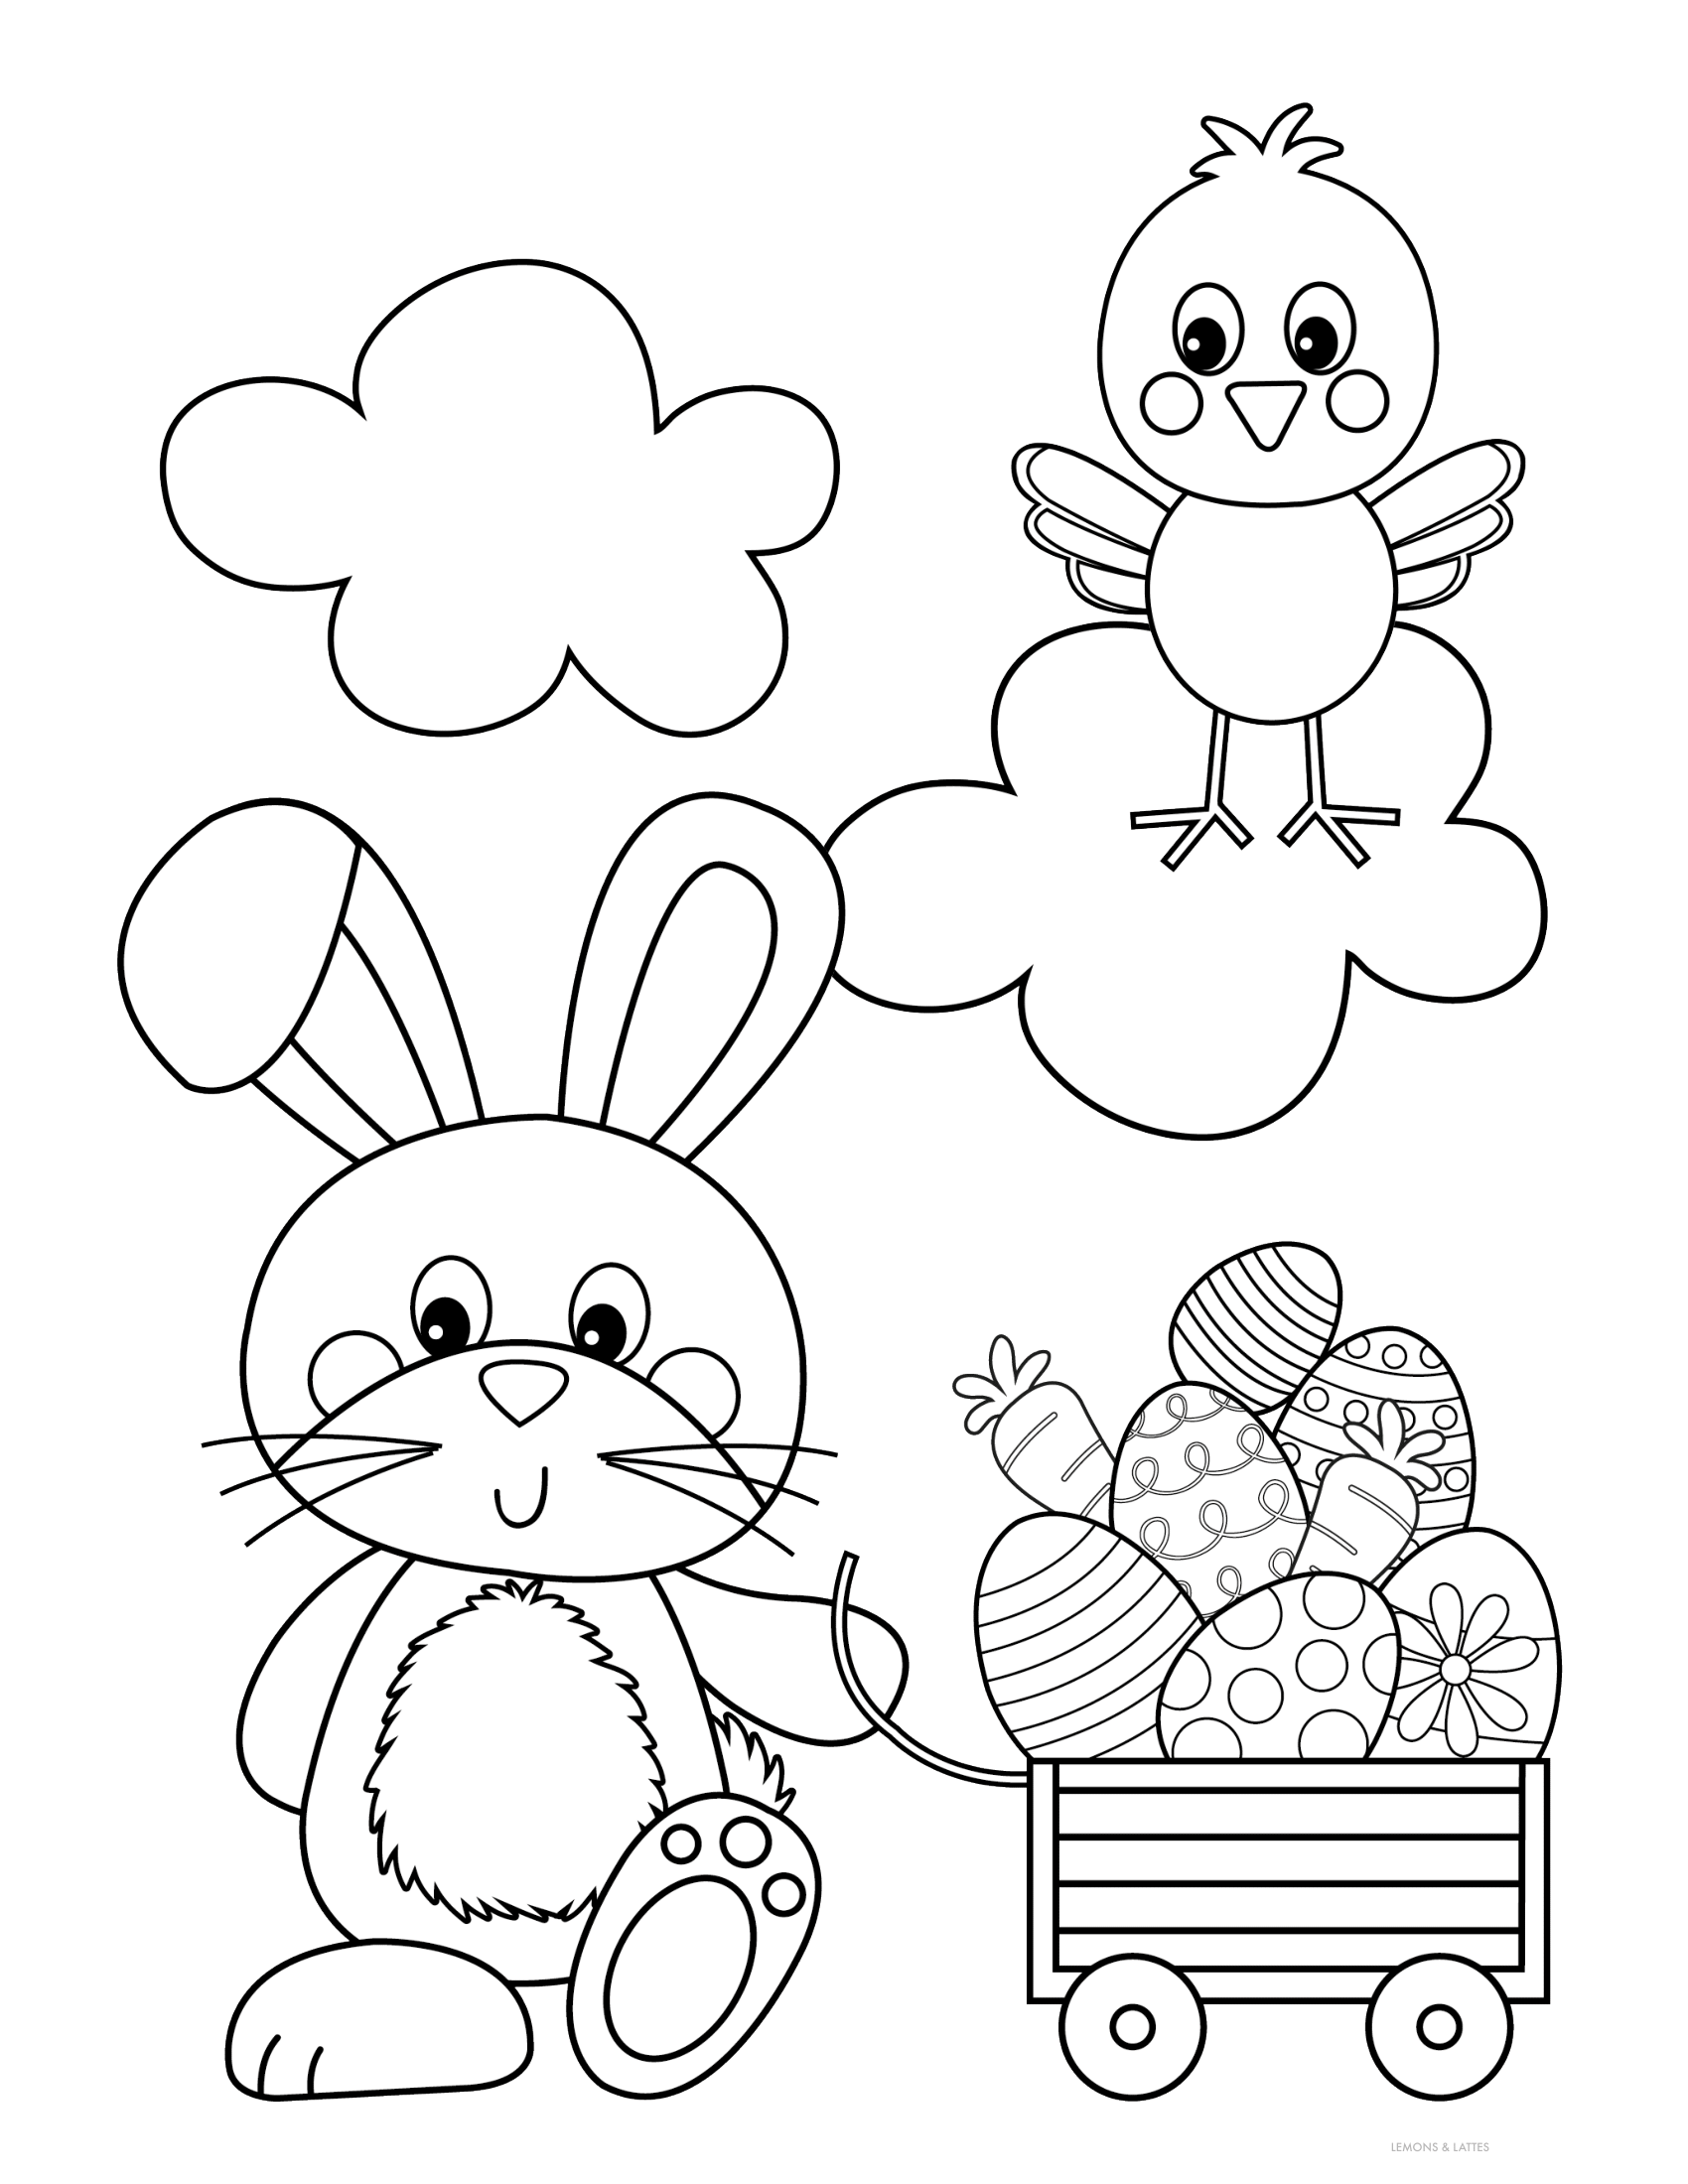 Free Printable Easter Coloring Pages Bunny Coloring Pages Easter Prints Easter Bunny Colouring